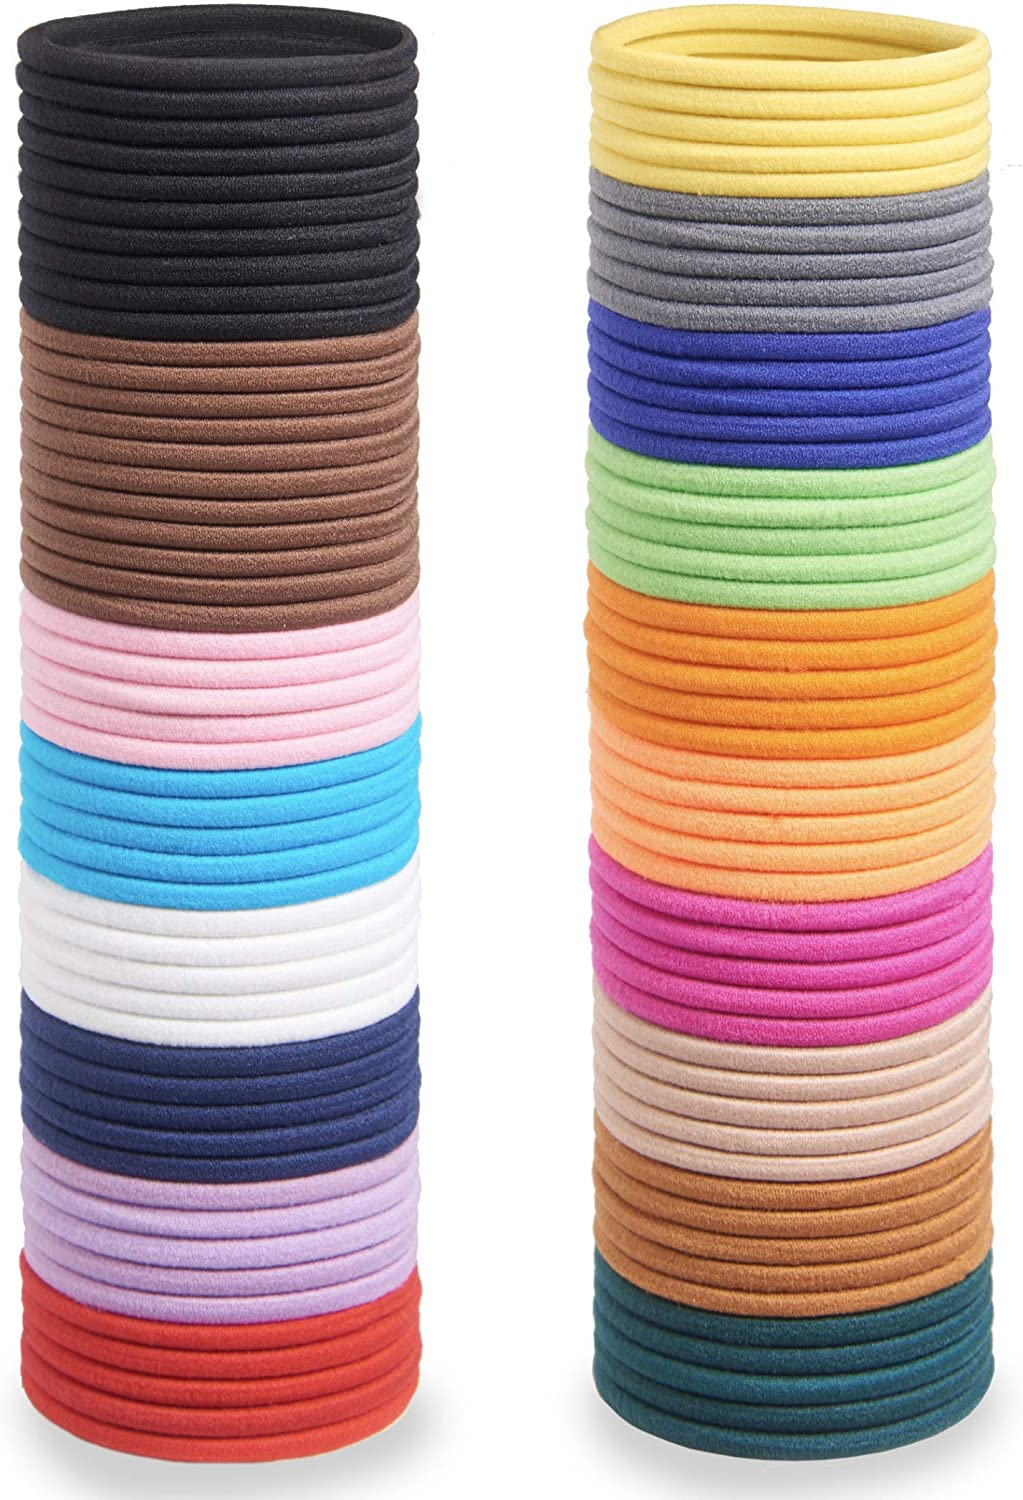 Soul Projekt Hair Bands 100 Pack 4mm/Excellent Multipurpose Ties(Multi 4mm), No Metal Tough Elastic Hair Bobbles for Numerous Hair Types/Pigtail, Plaiting, Ponytails & Buns For School, Work or Gym